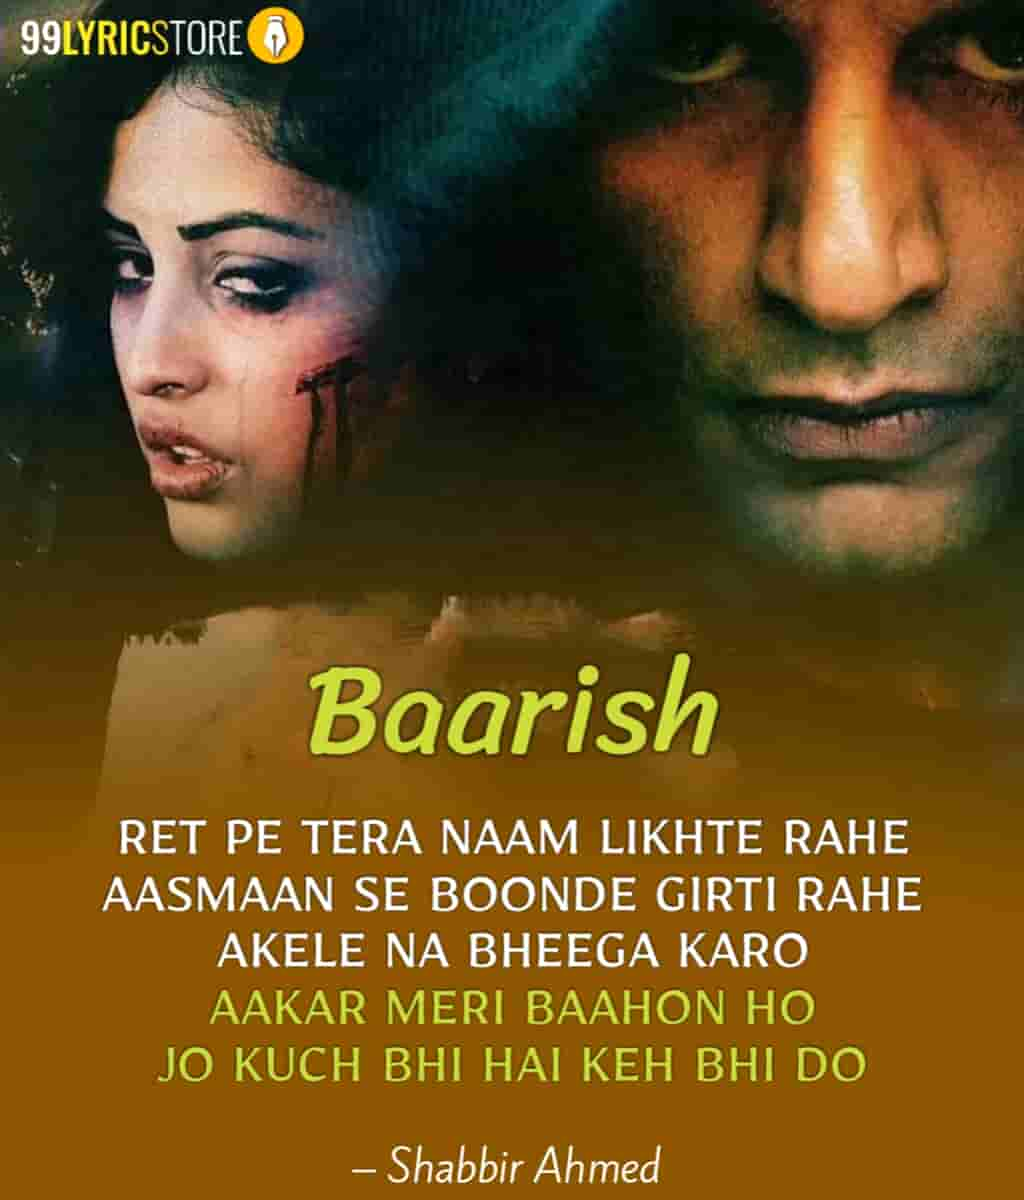 Baarish love Hindi song sung by Jubin Nautiyal